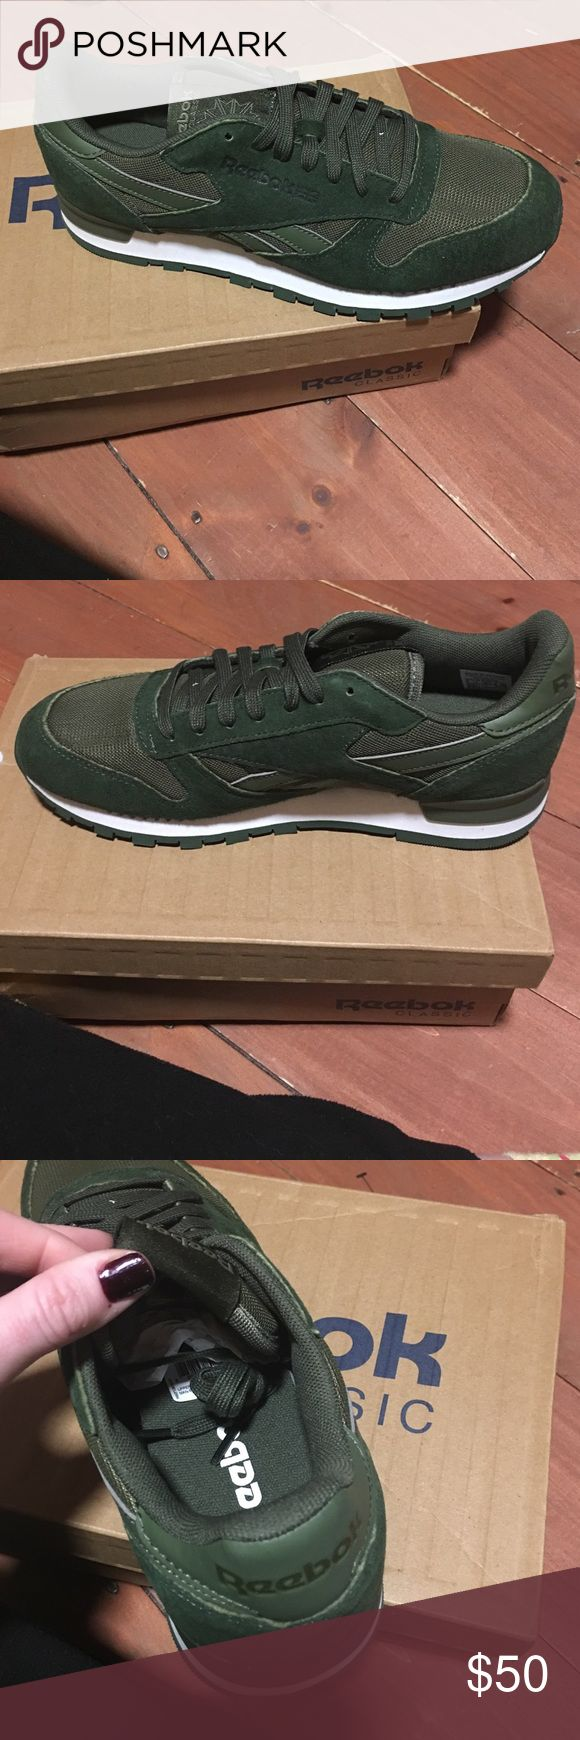 Reebok Classics - green size 8 men/9 women Brand new w tags and original box/packing! Super cute Reebok classics size 8 (mens)! Dress them up with skinny jeans and a tee! Reebok Shoes Sneakers